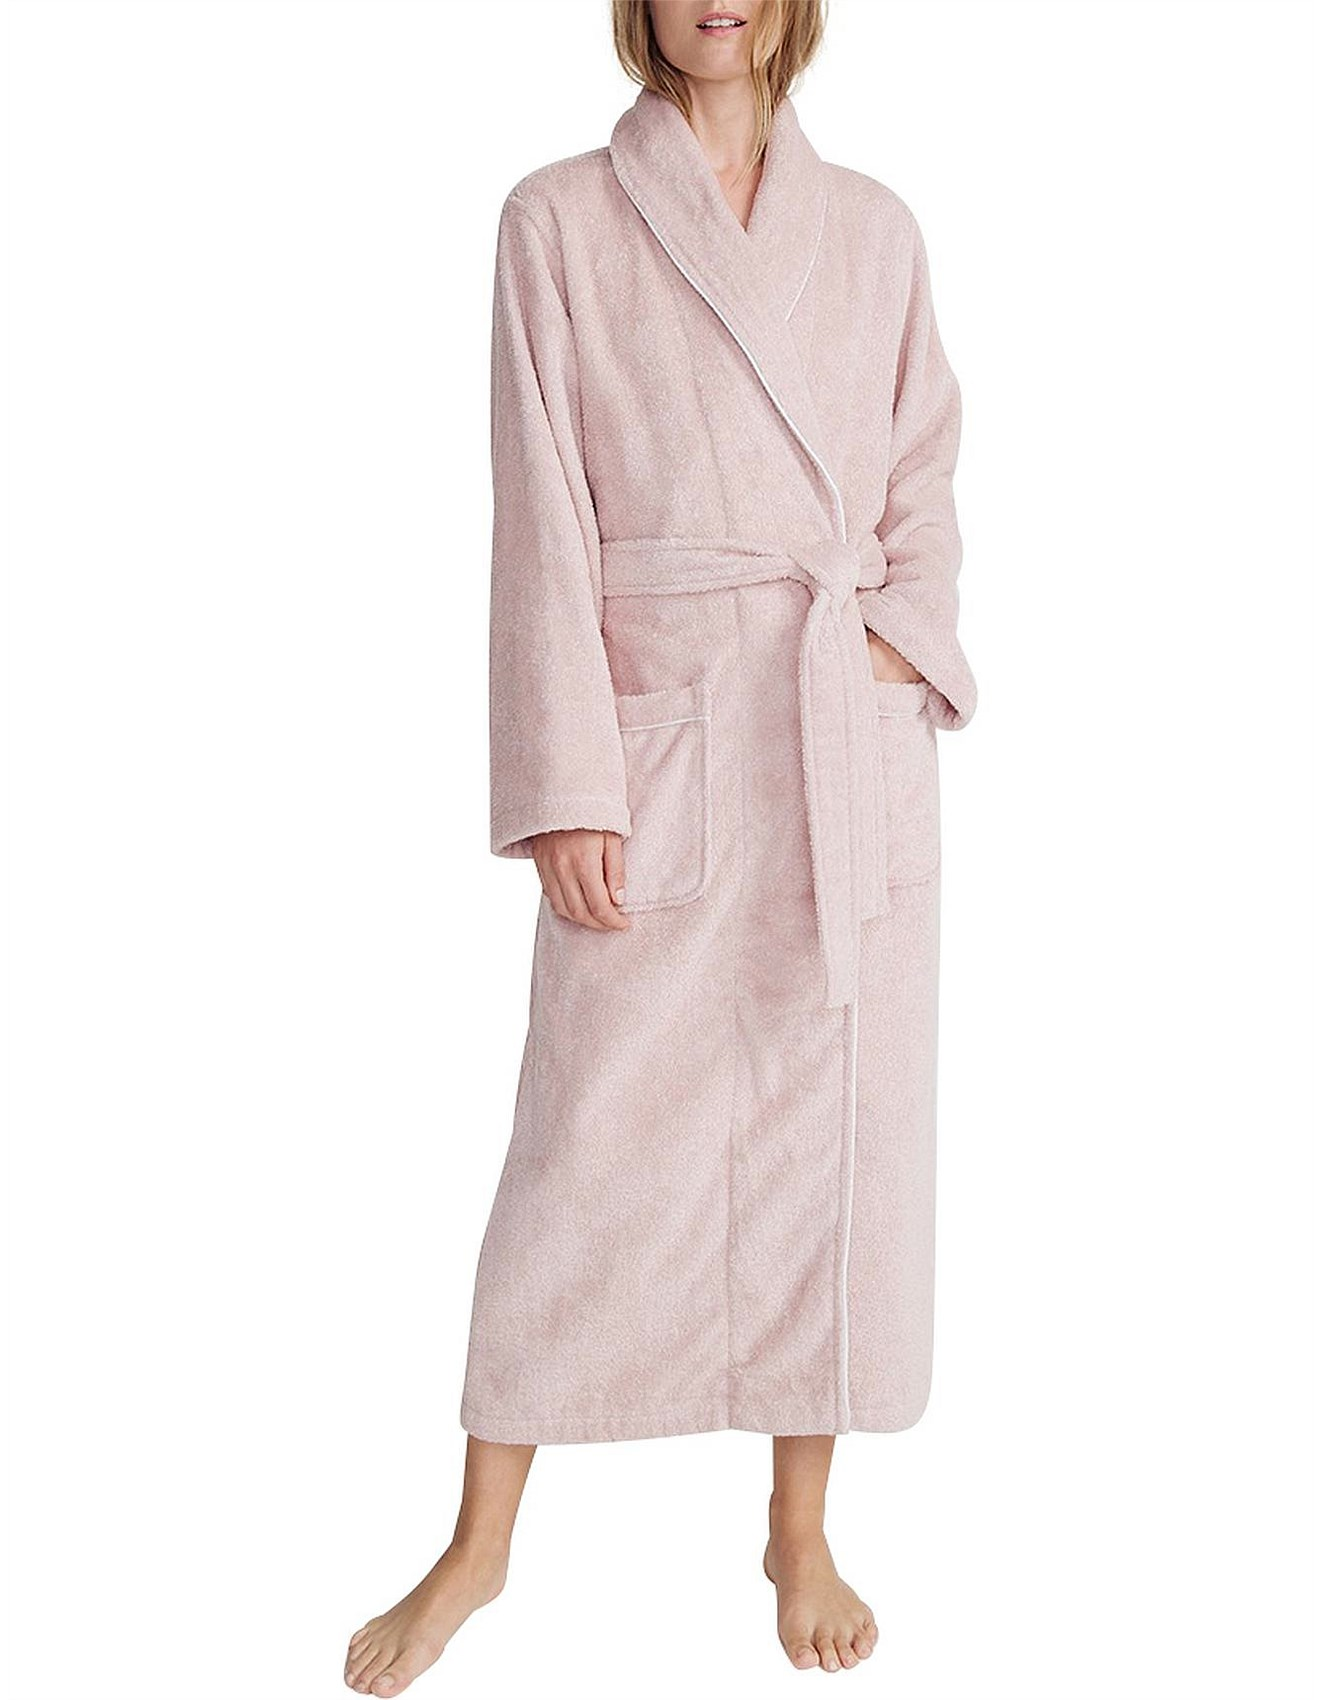 2ff1ce1c0f Elissa Lux Egyptian Spa Robe - Extra Small Small. 1  2. Zoom. Sheridan